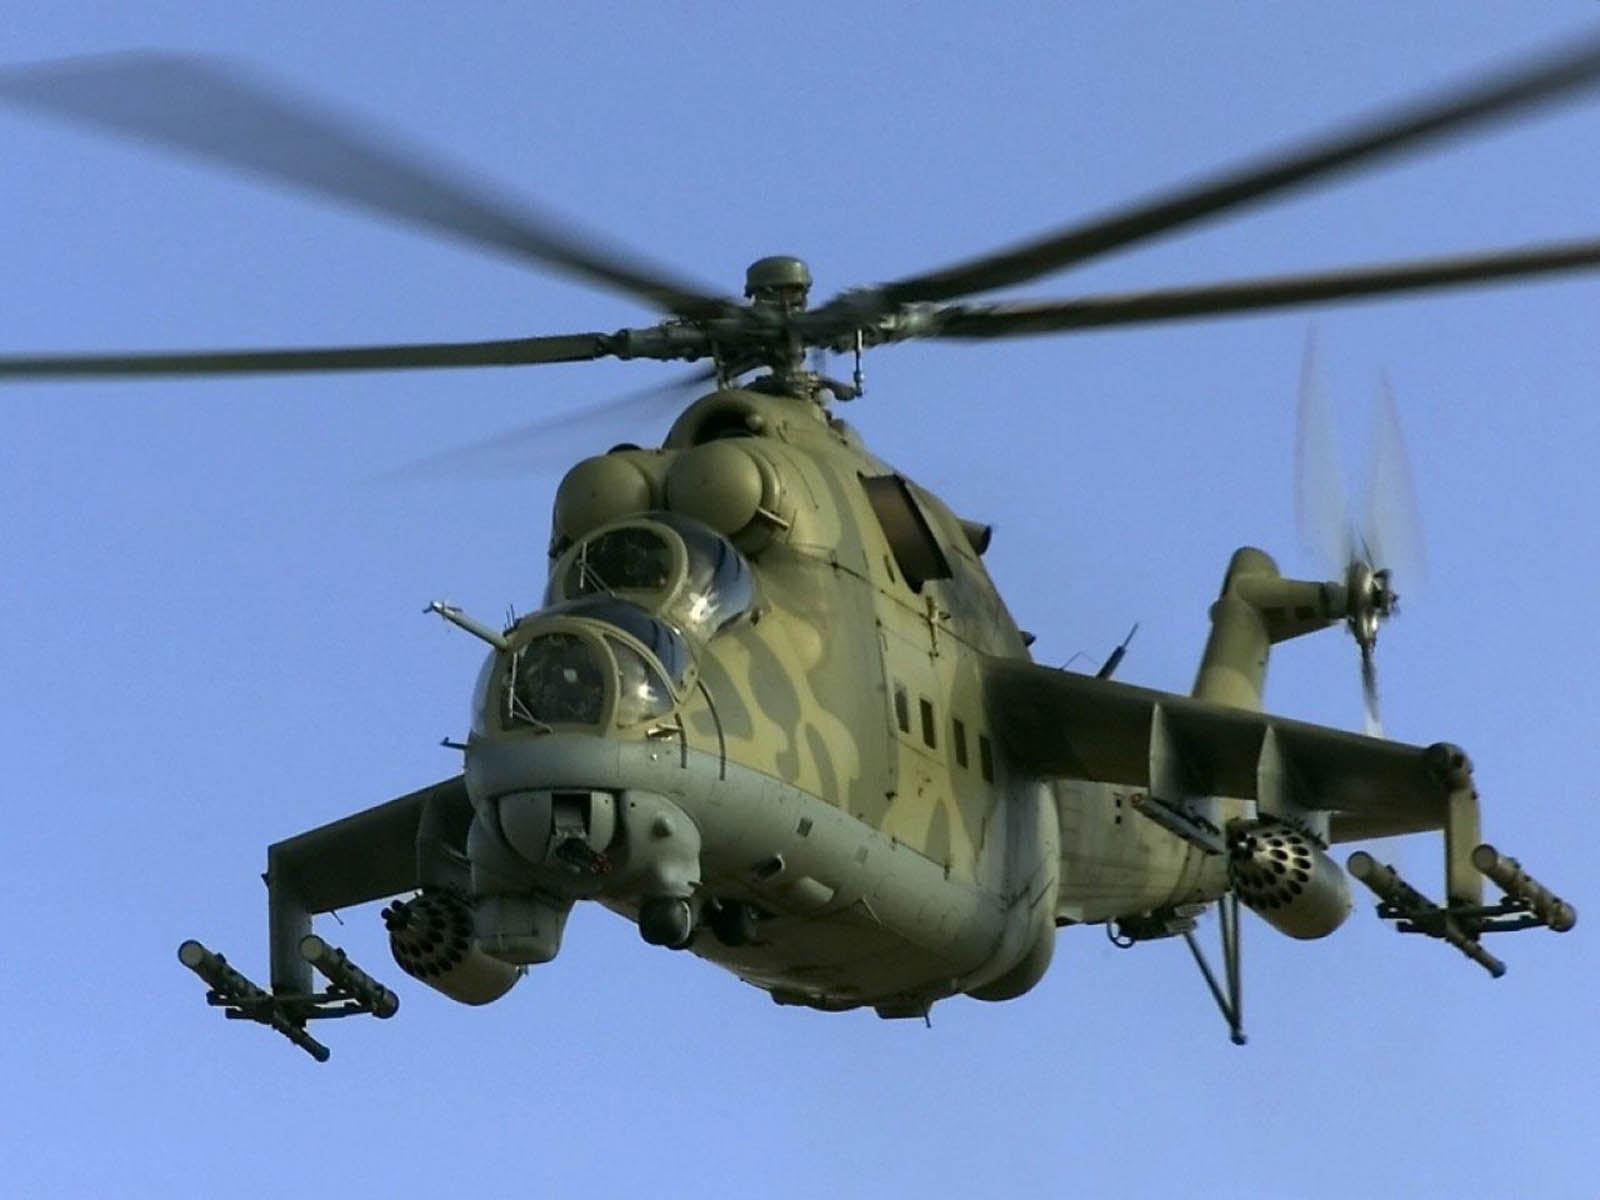 mi 24 hind helicopter picture for wallpaper